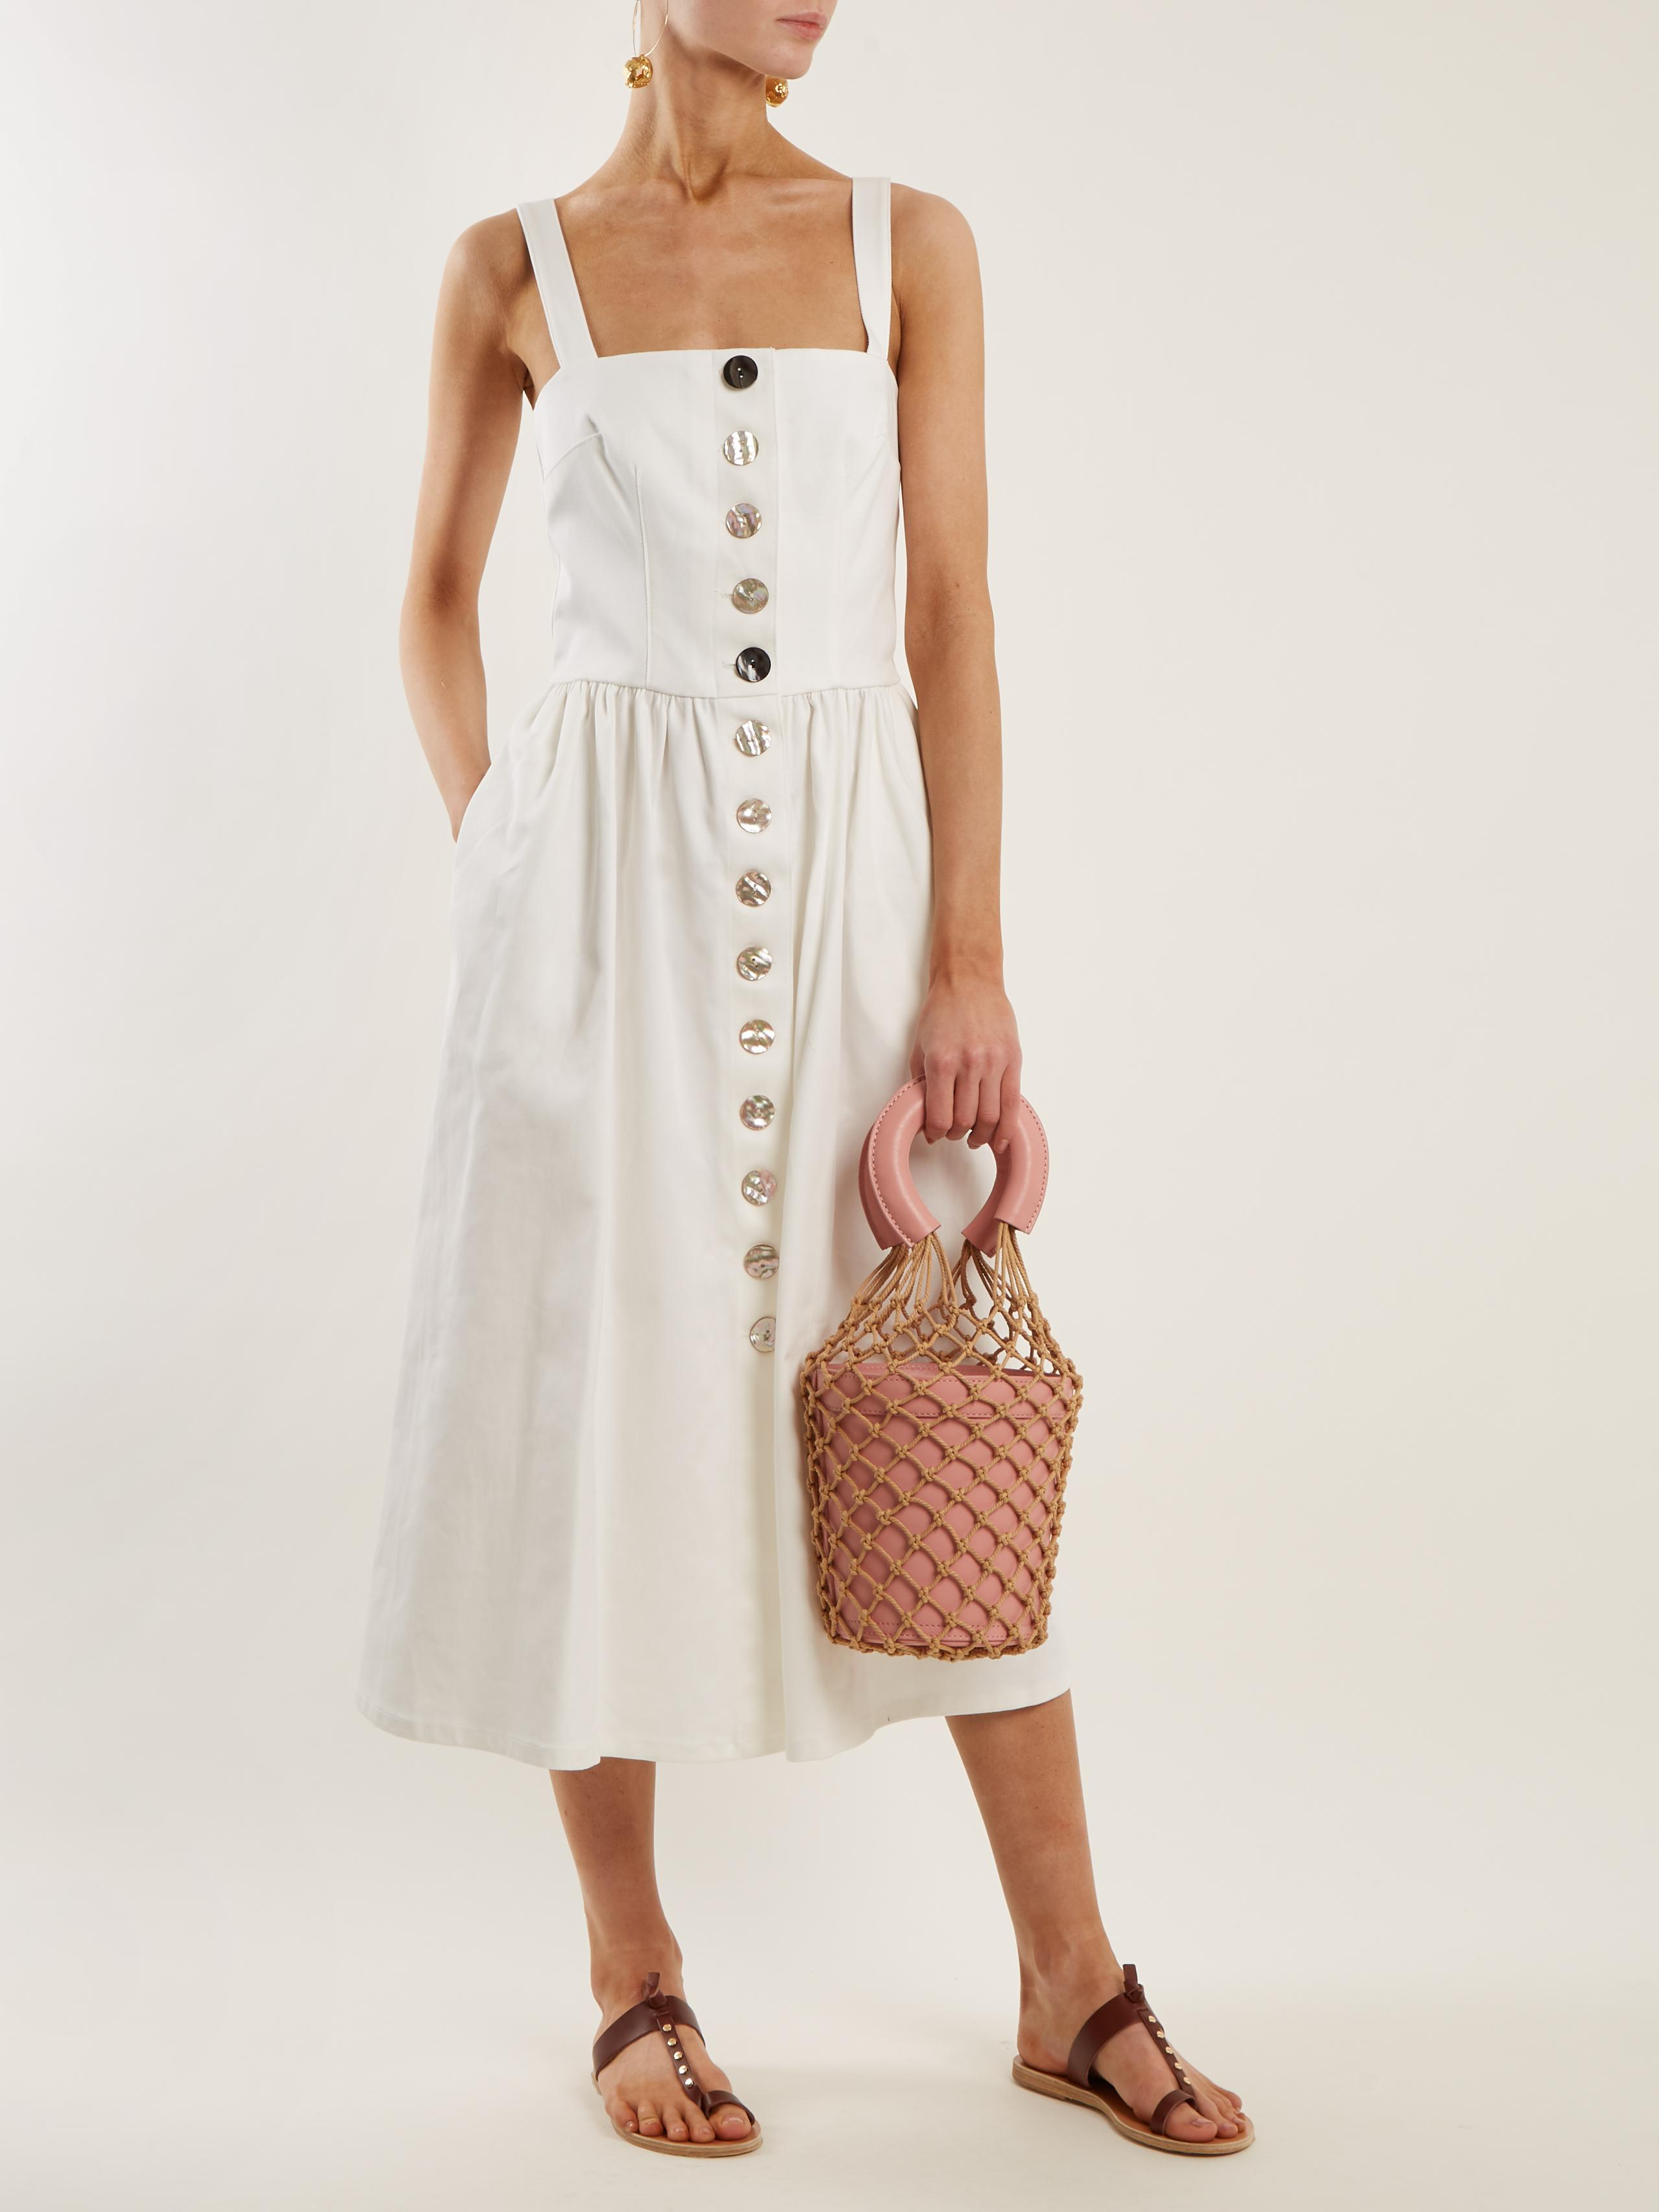 2e07904a2 STAUD Moreau Macrame And Leather Bucket Bag in Pink - Lyst